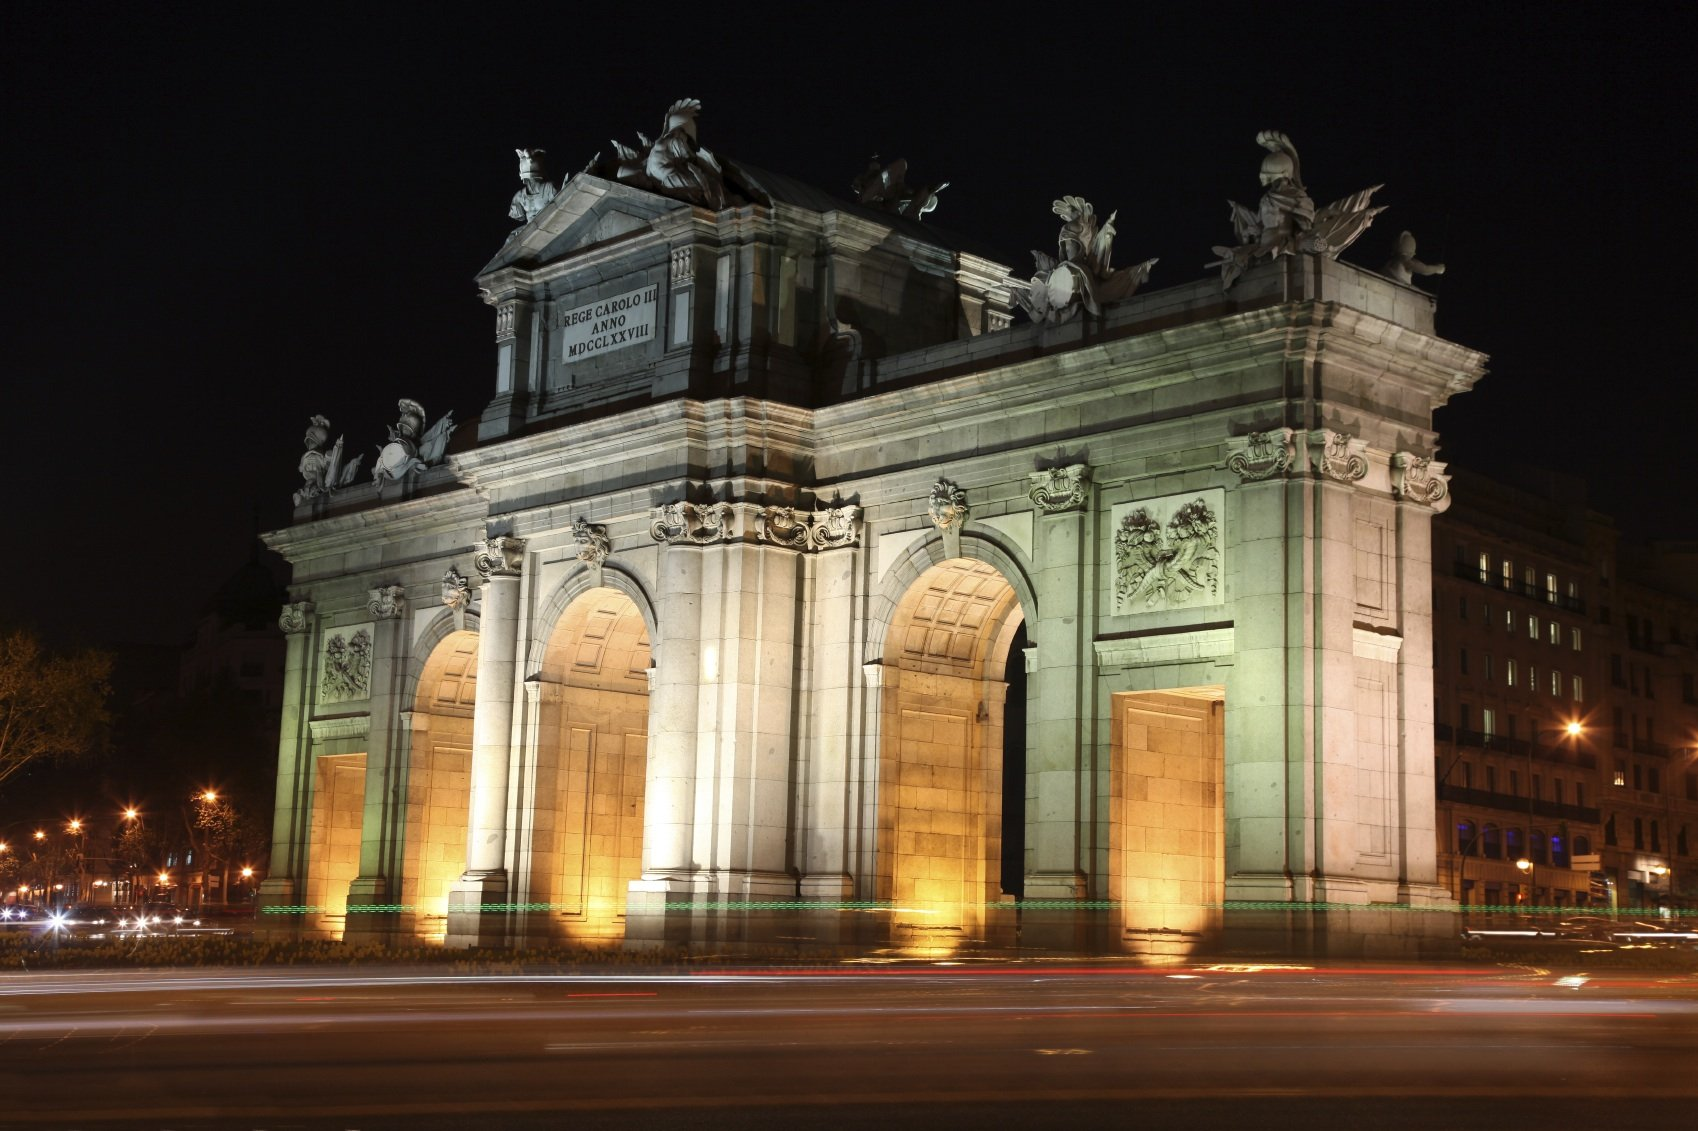 Discover The City Of Madrid With These Gorgeous Images